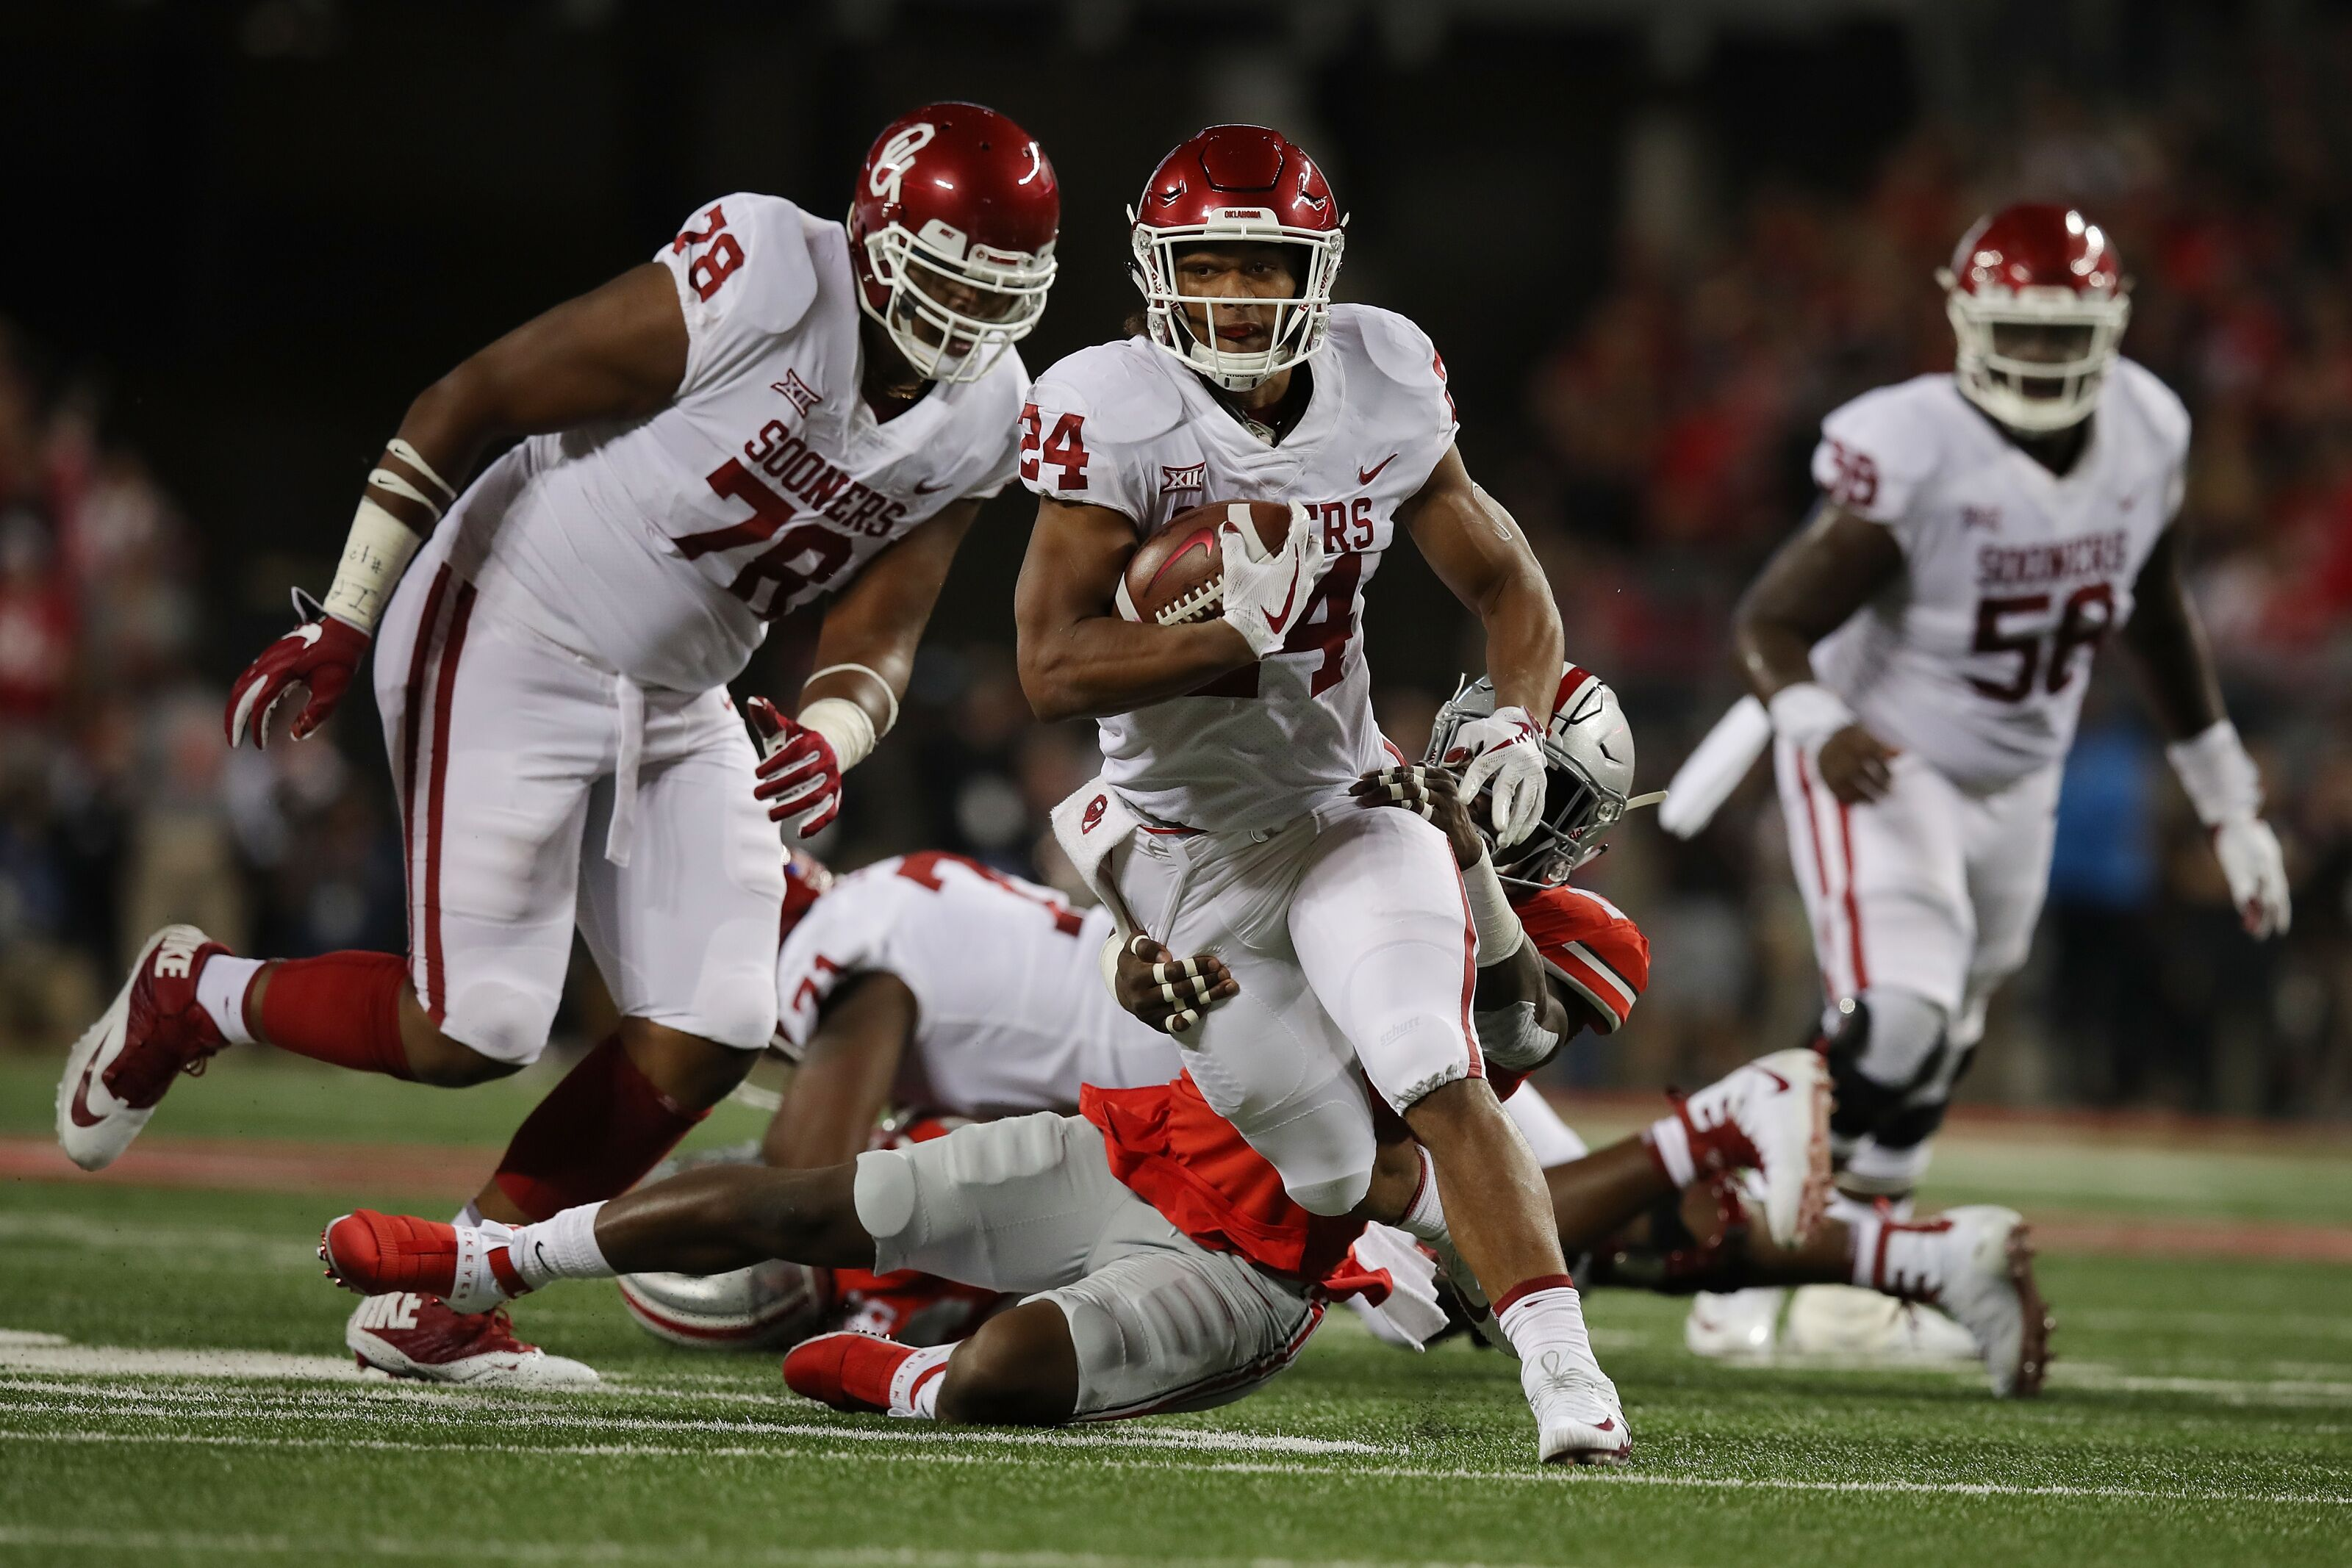 Oklahoma football throwback: What's the biggest rushing game in OU history?